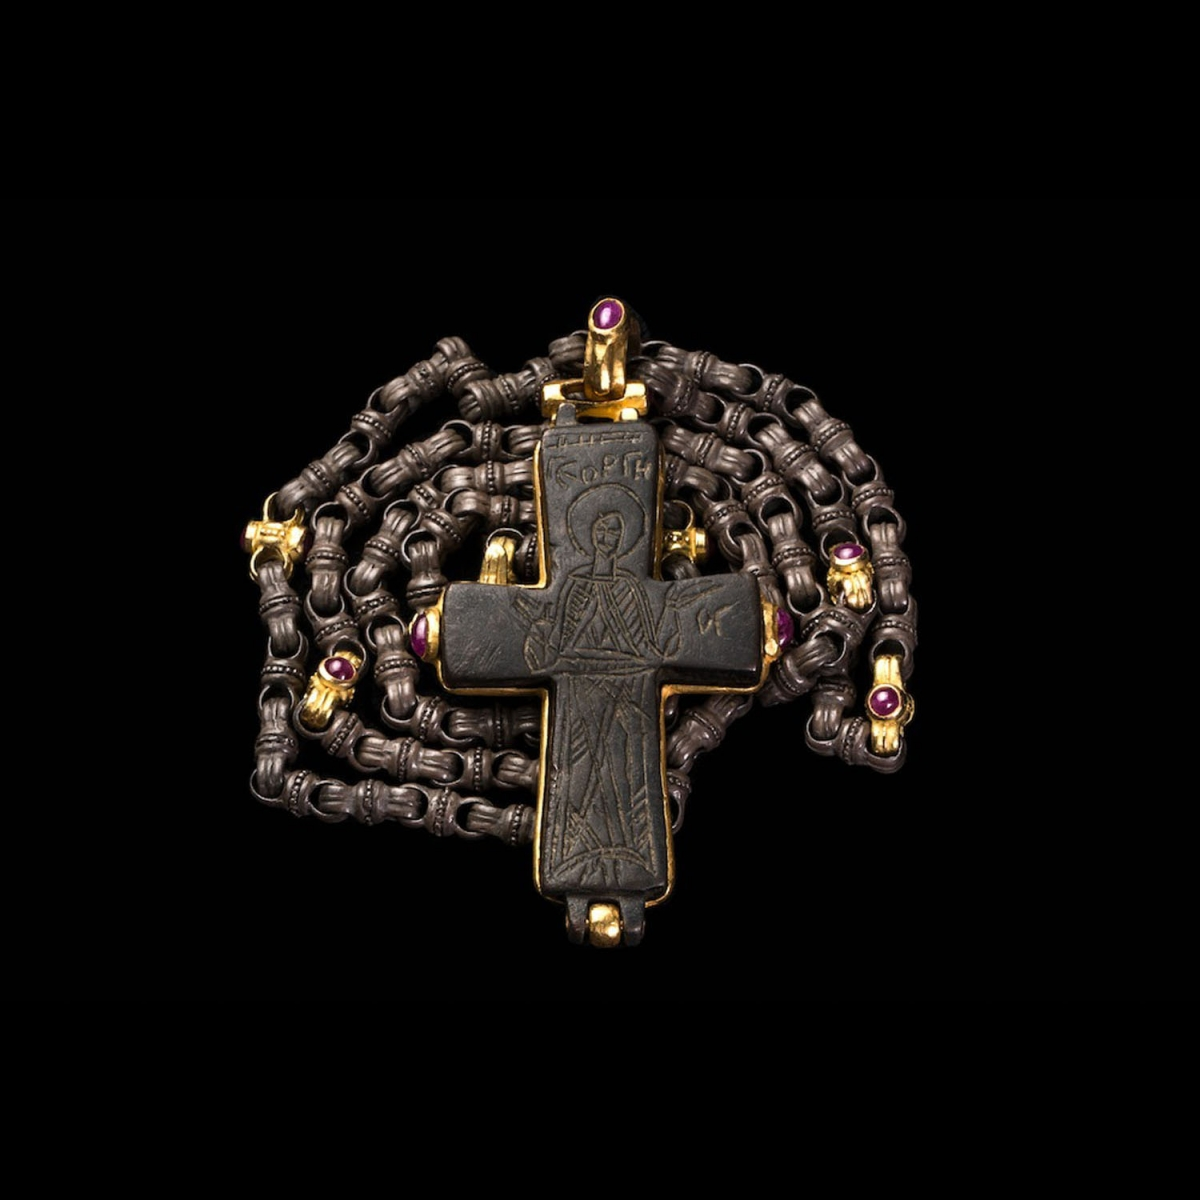 Photo of roman-coptic-reliquary-cross-with-rubies